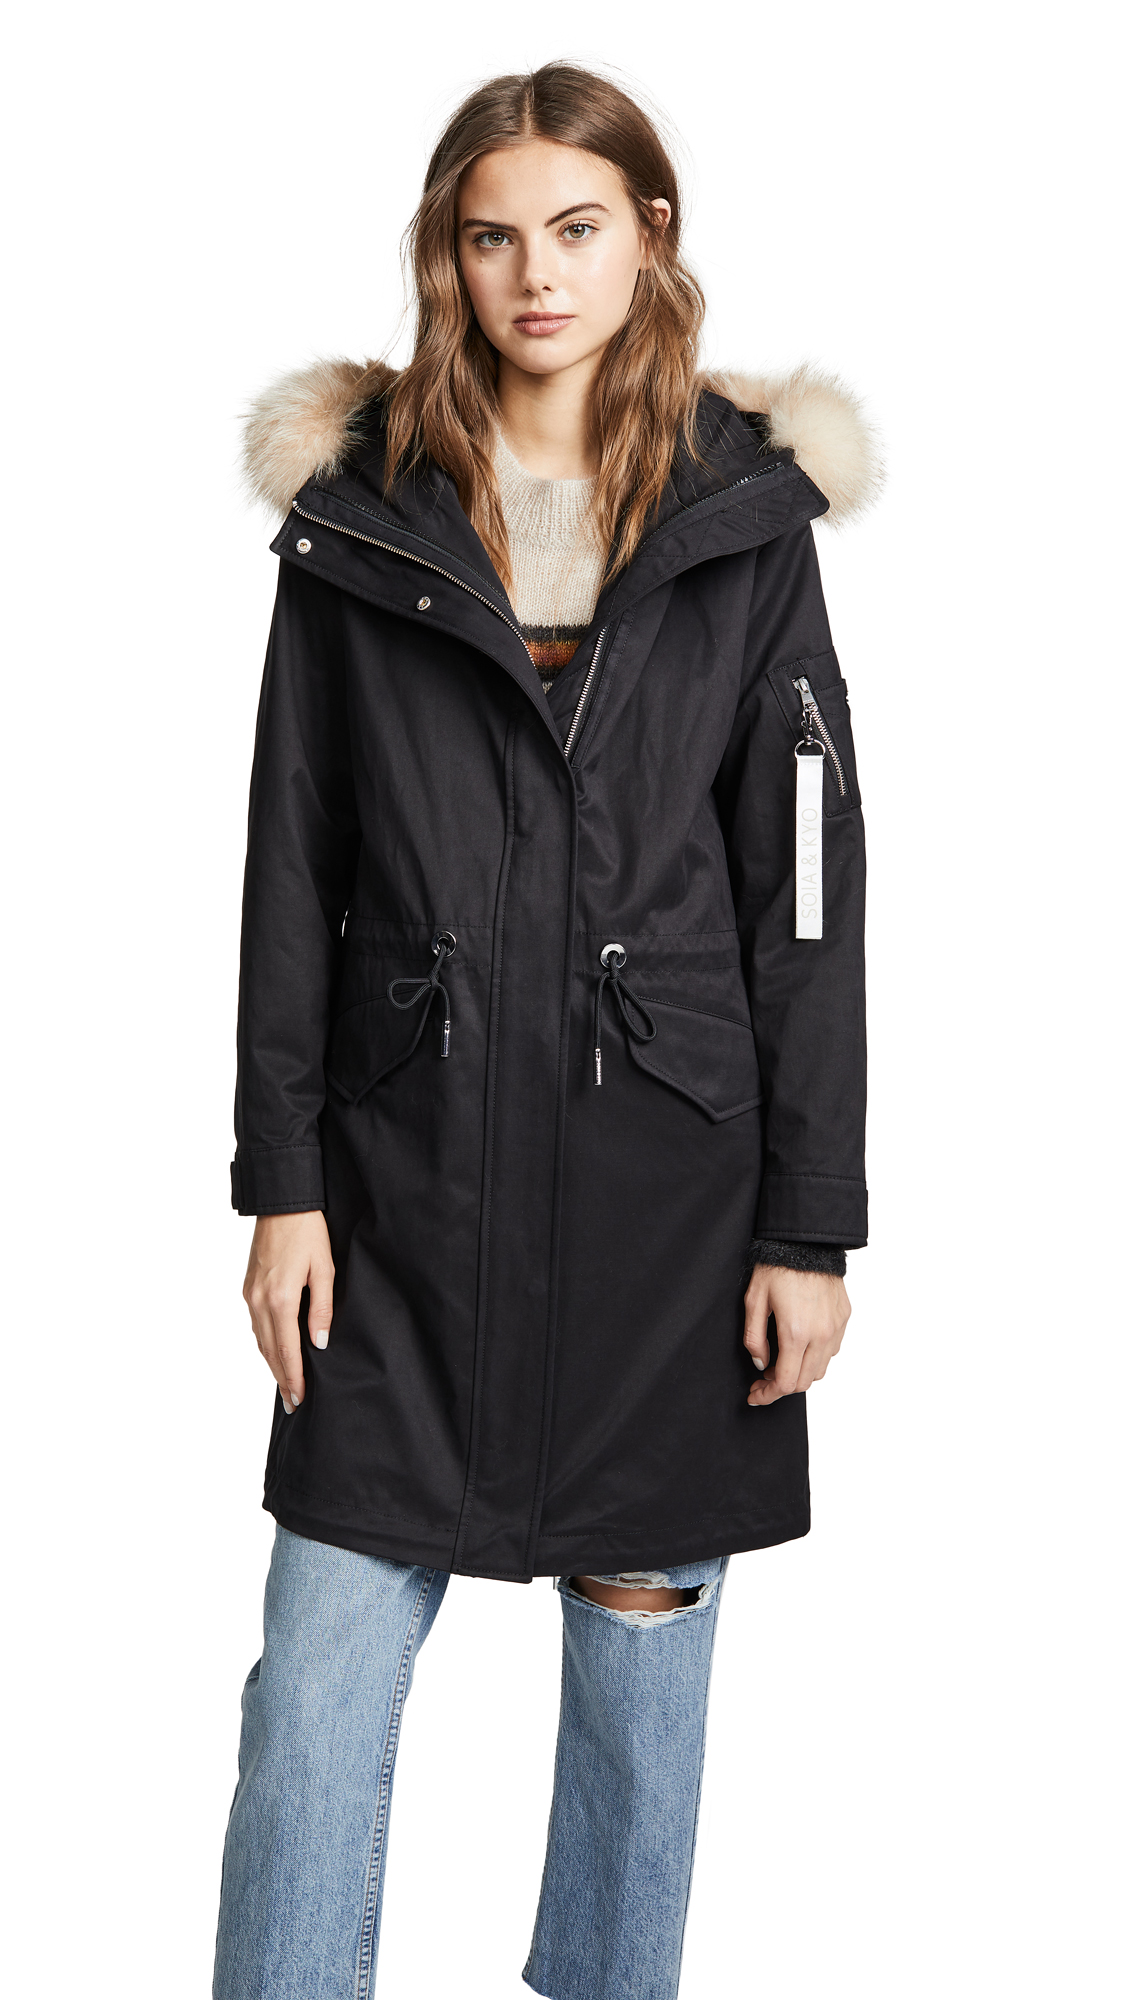 SOIA & KYO Lois Utility Down Coat With Fur Trim in Black